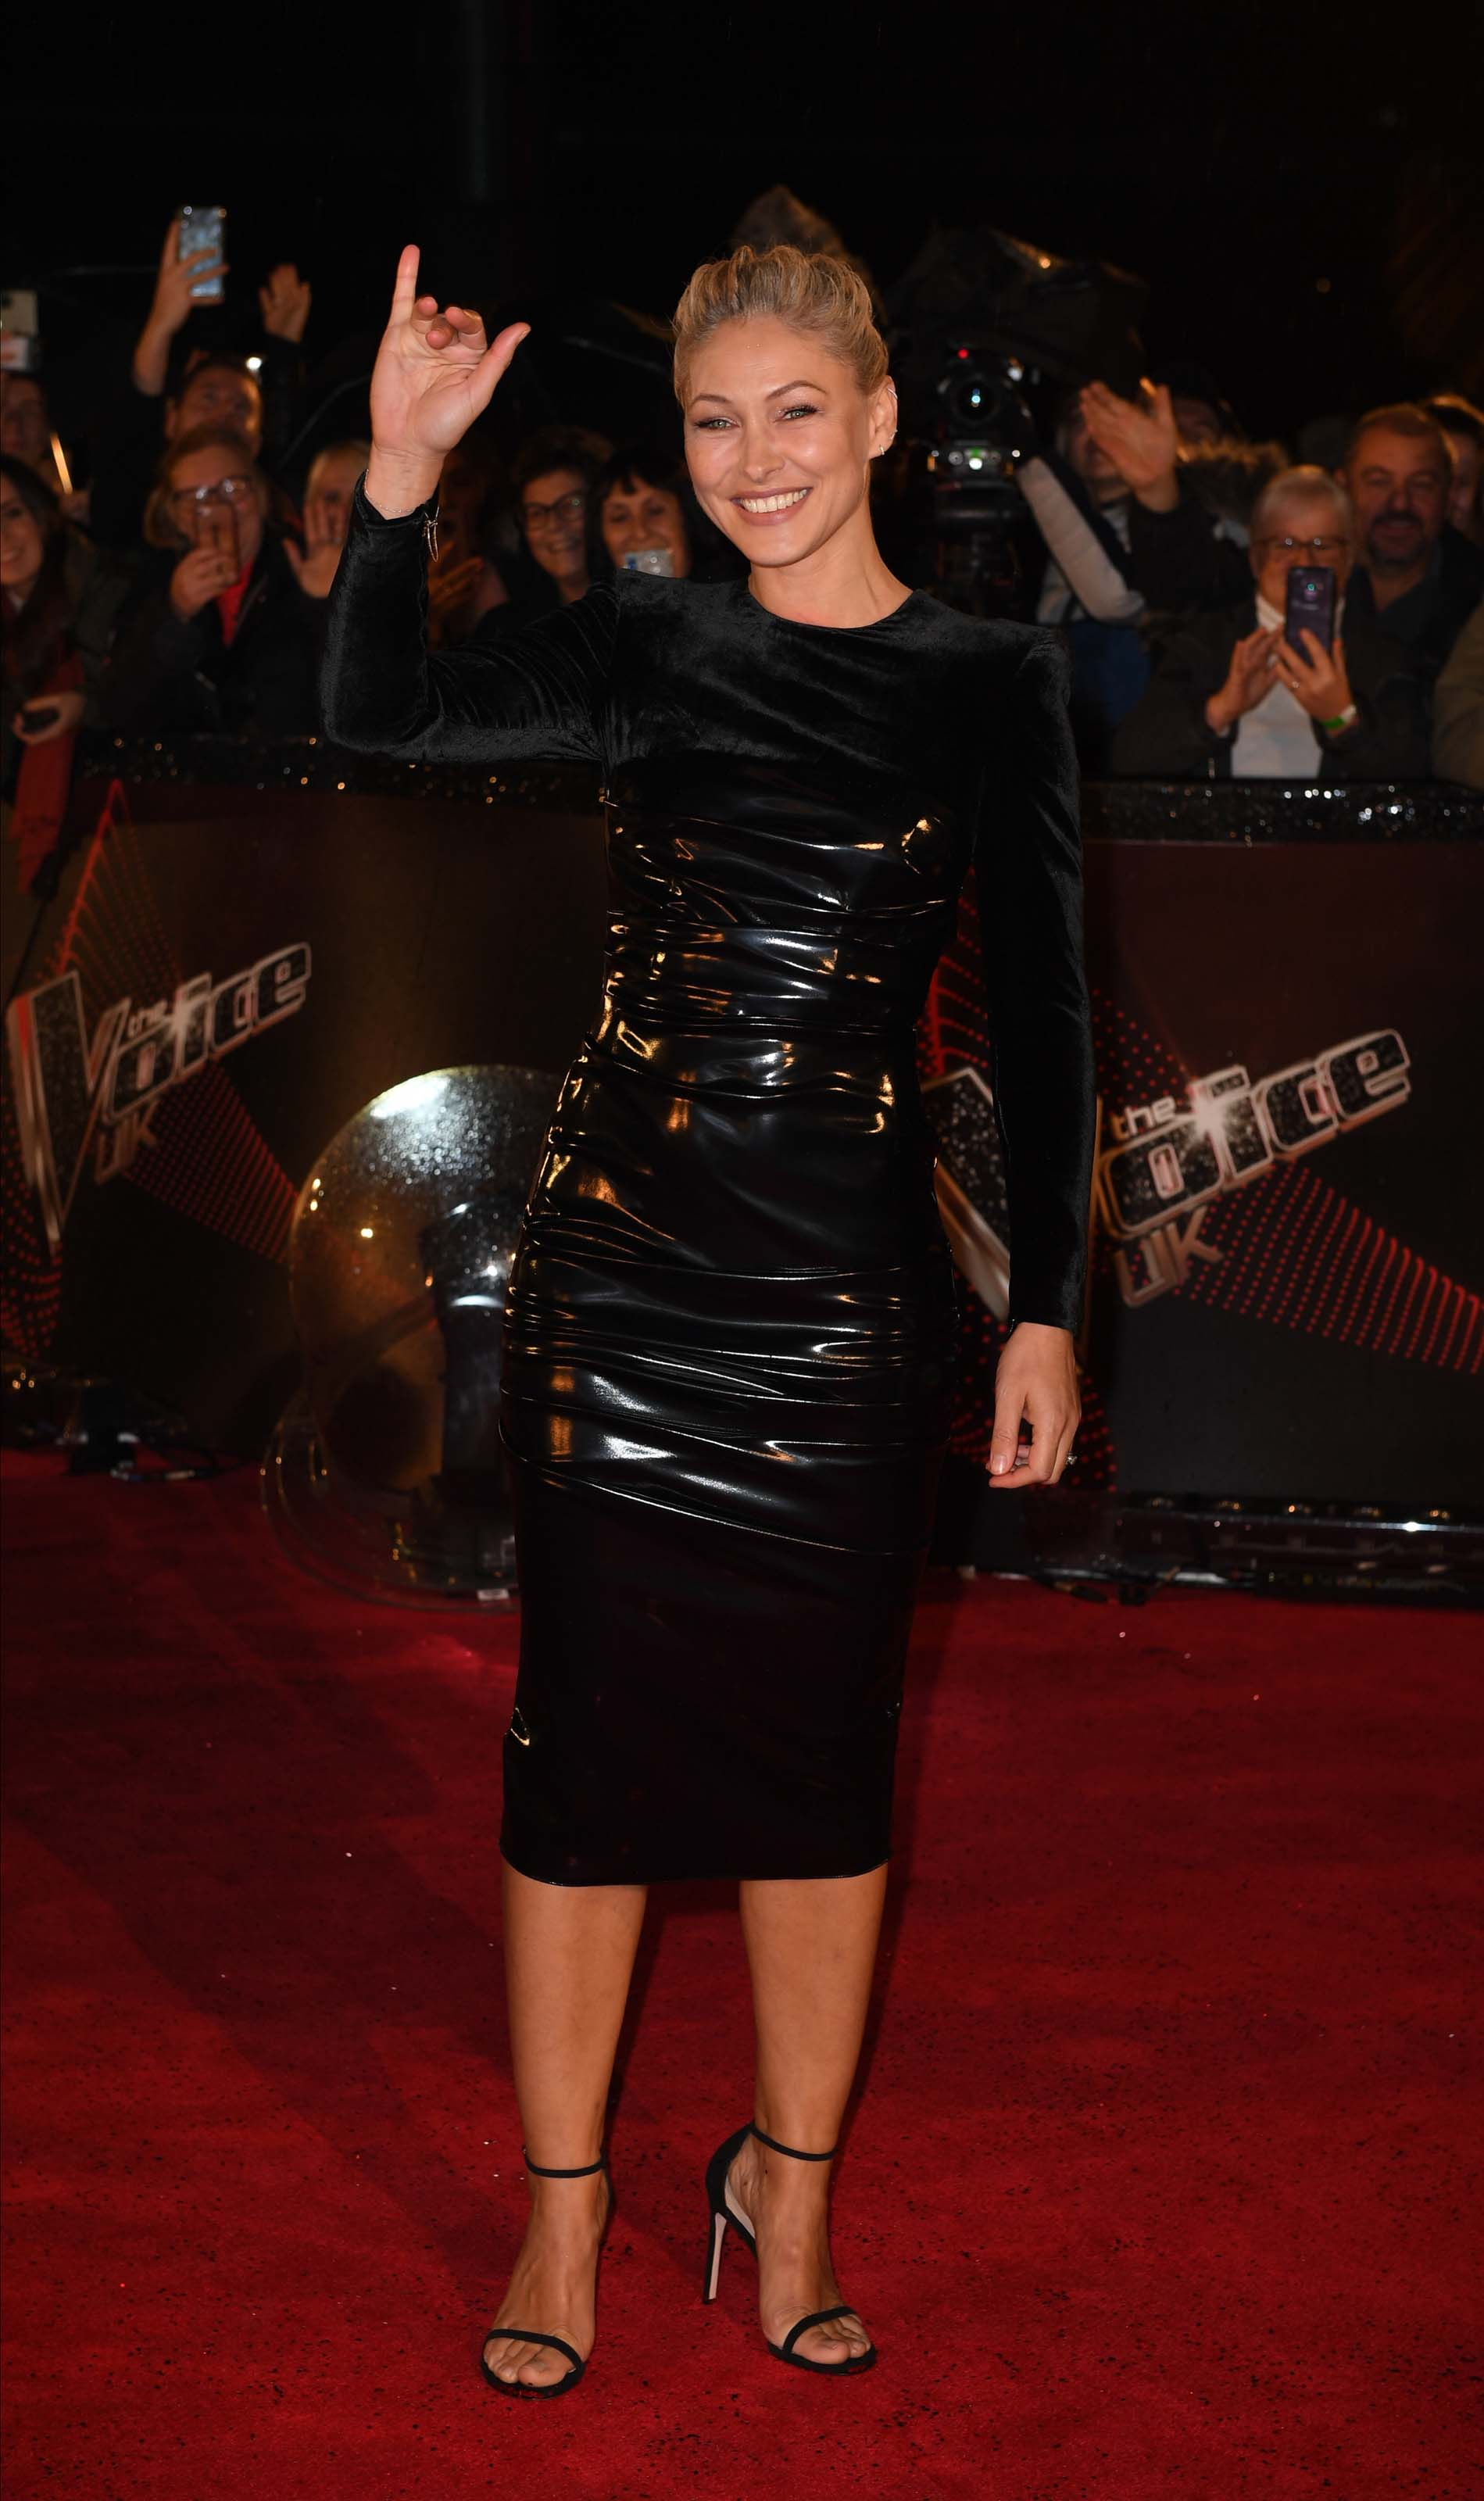 Emma Willis attends The Voice UK Blind Auditions